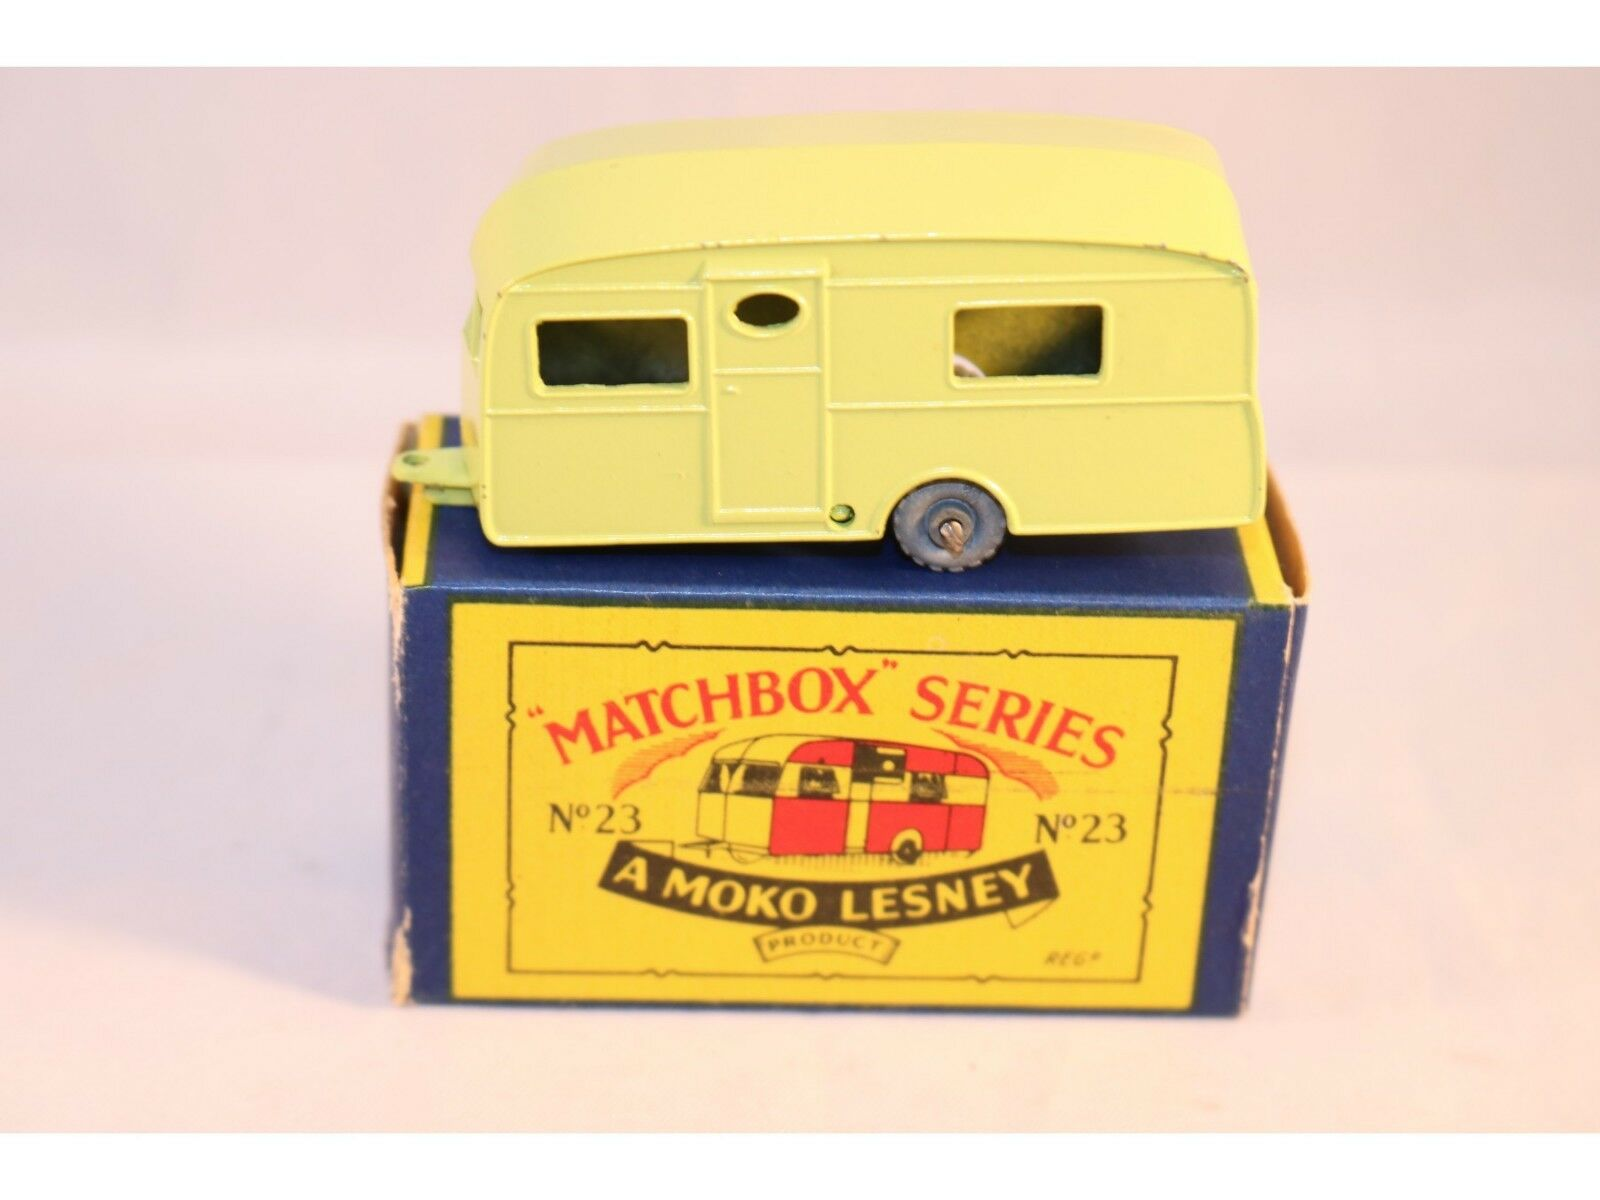 Matchbox A Moko Lesney No 23 Caravan lime green with GMW 99% mint in box